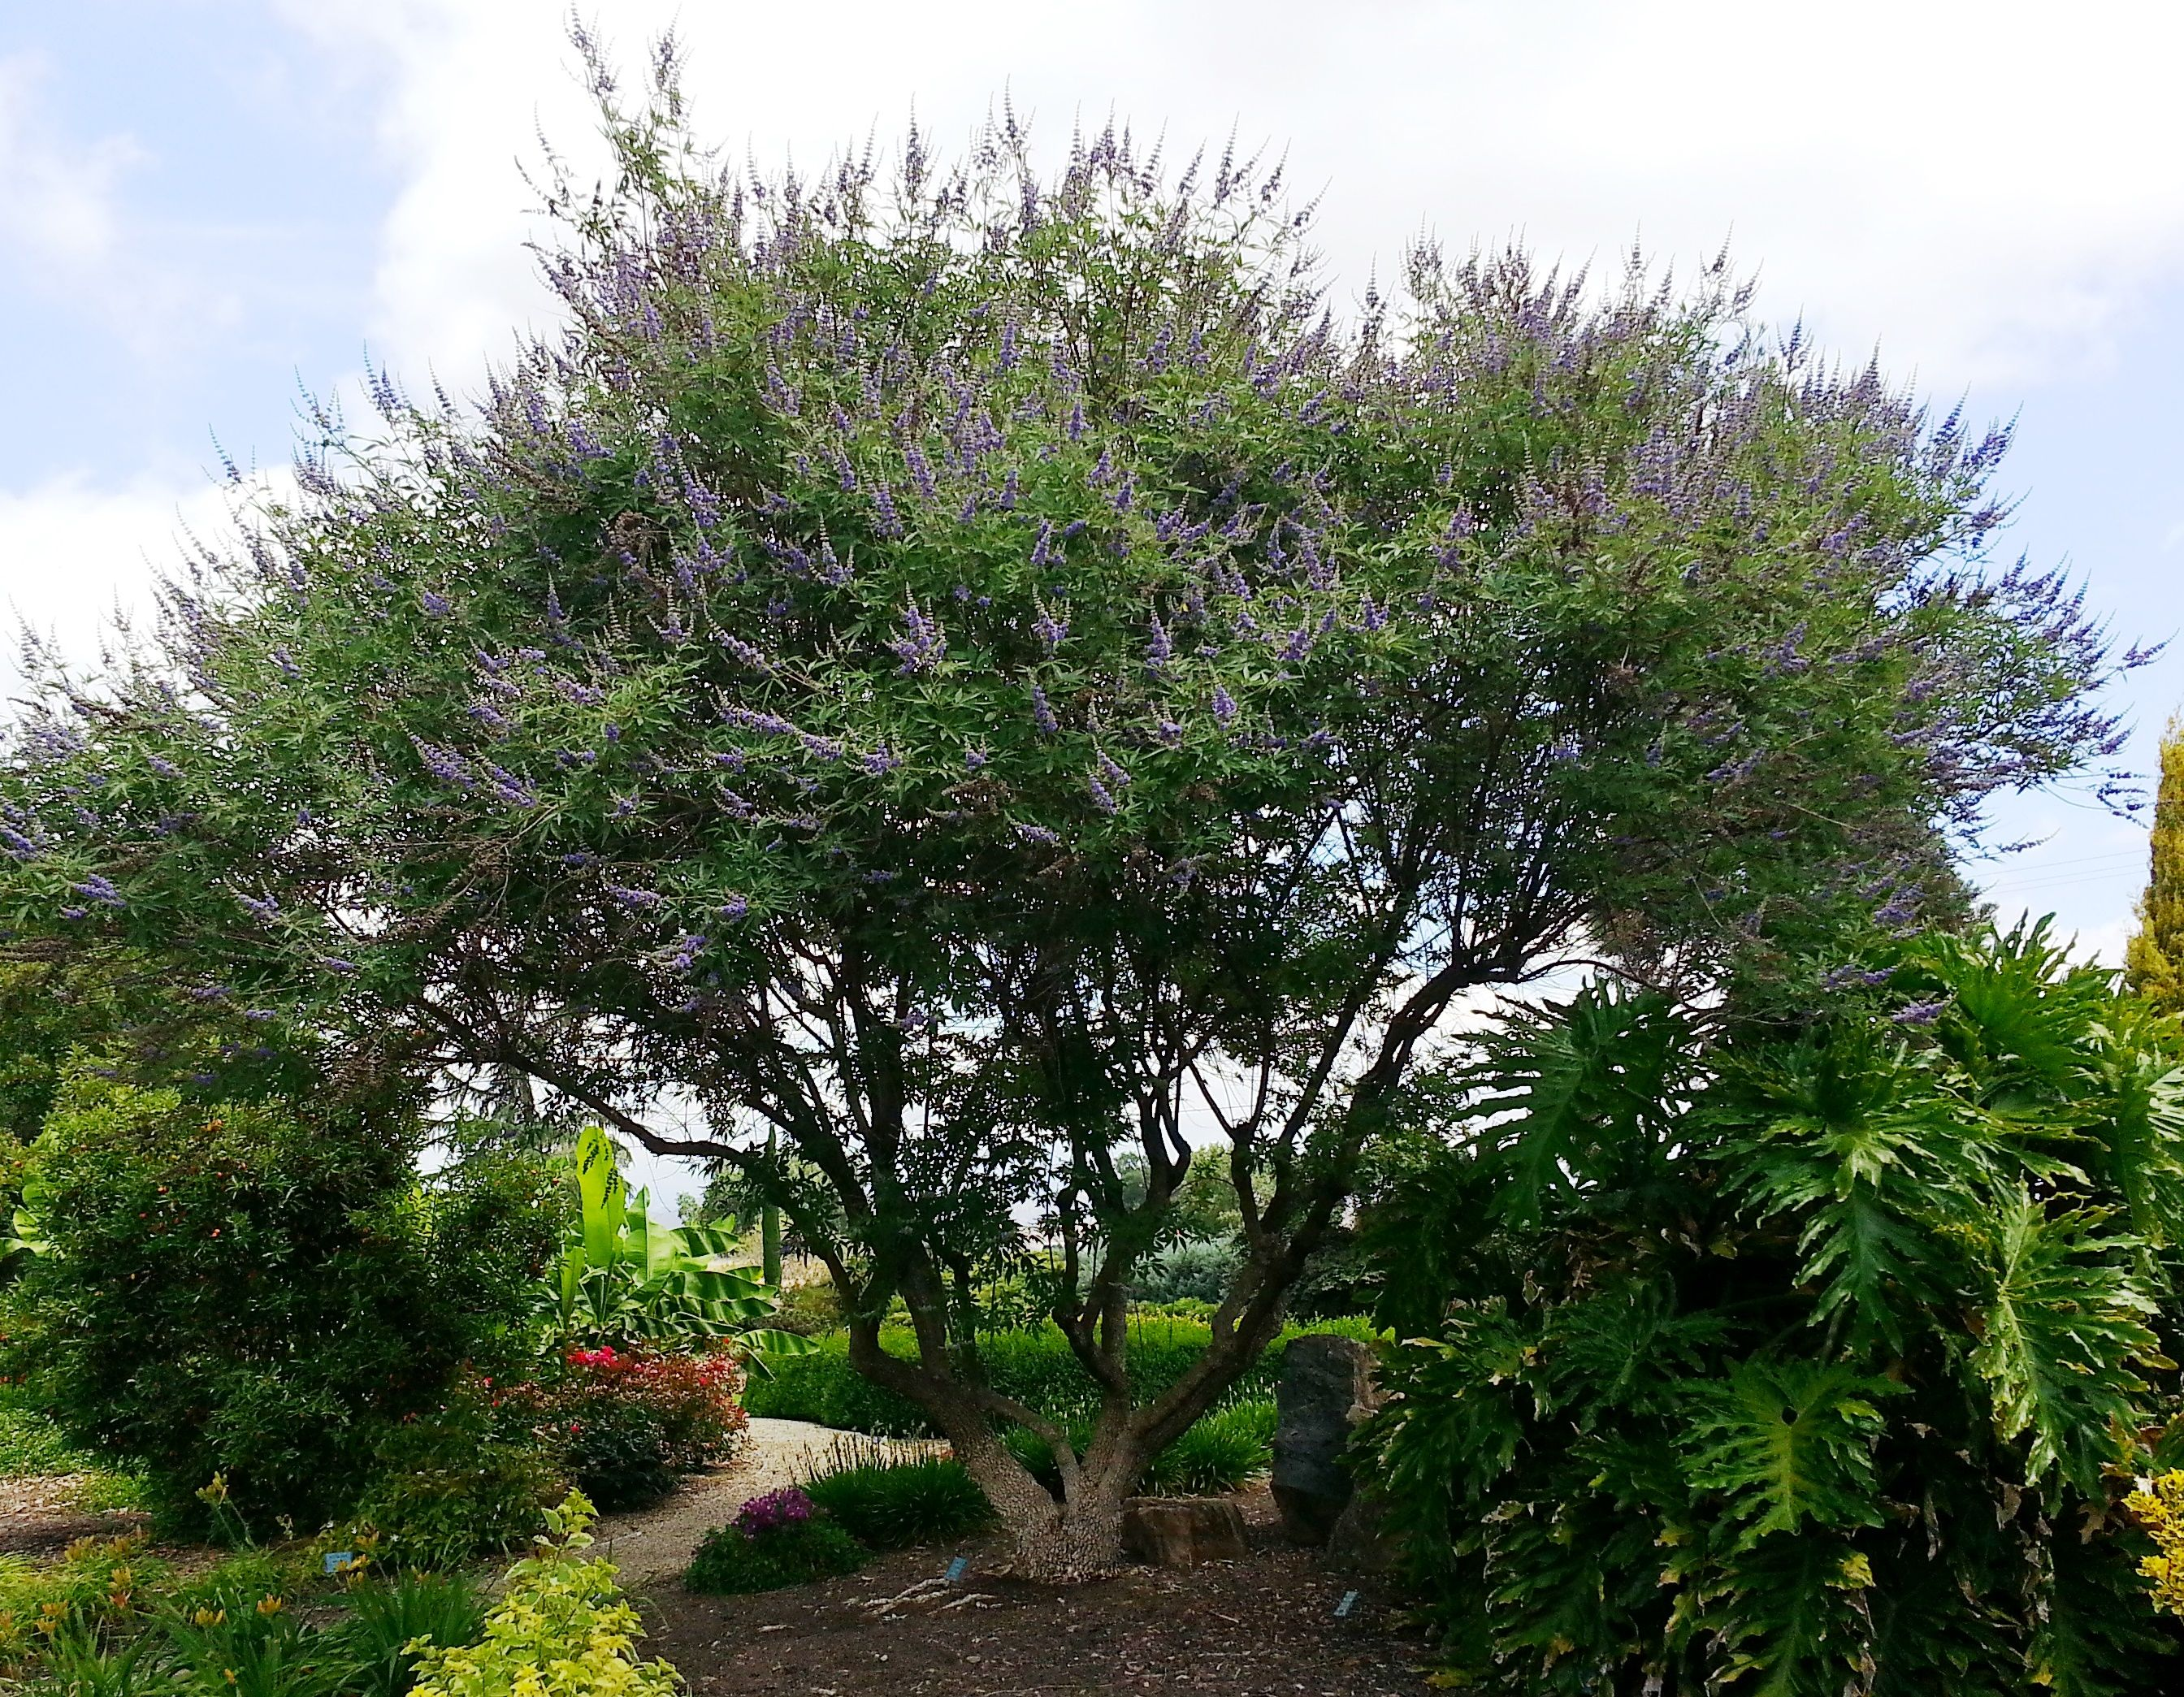 Chaste Tree: Beautiful Garden Or Patio Tree Shows Terminal Clusters Of  Fragrant Lilac Blooms. Broad And Spreading, Effective Multi Trunk Display.